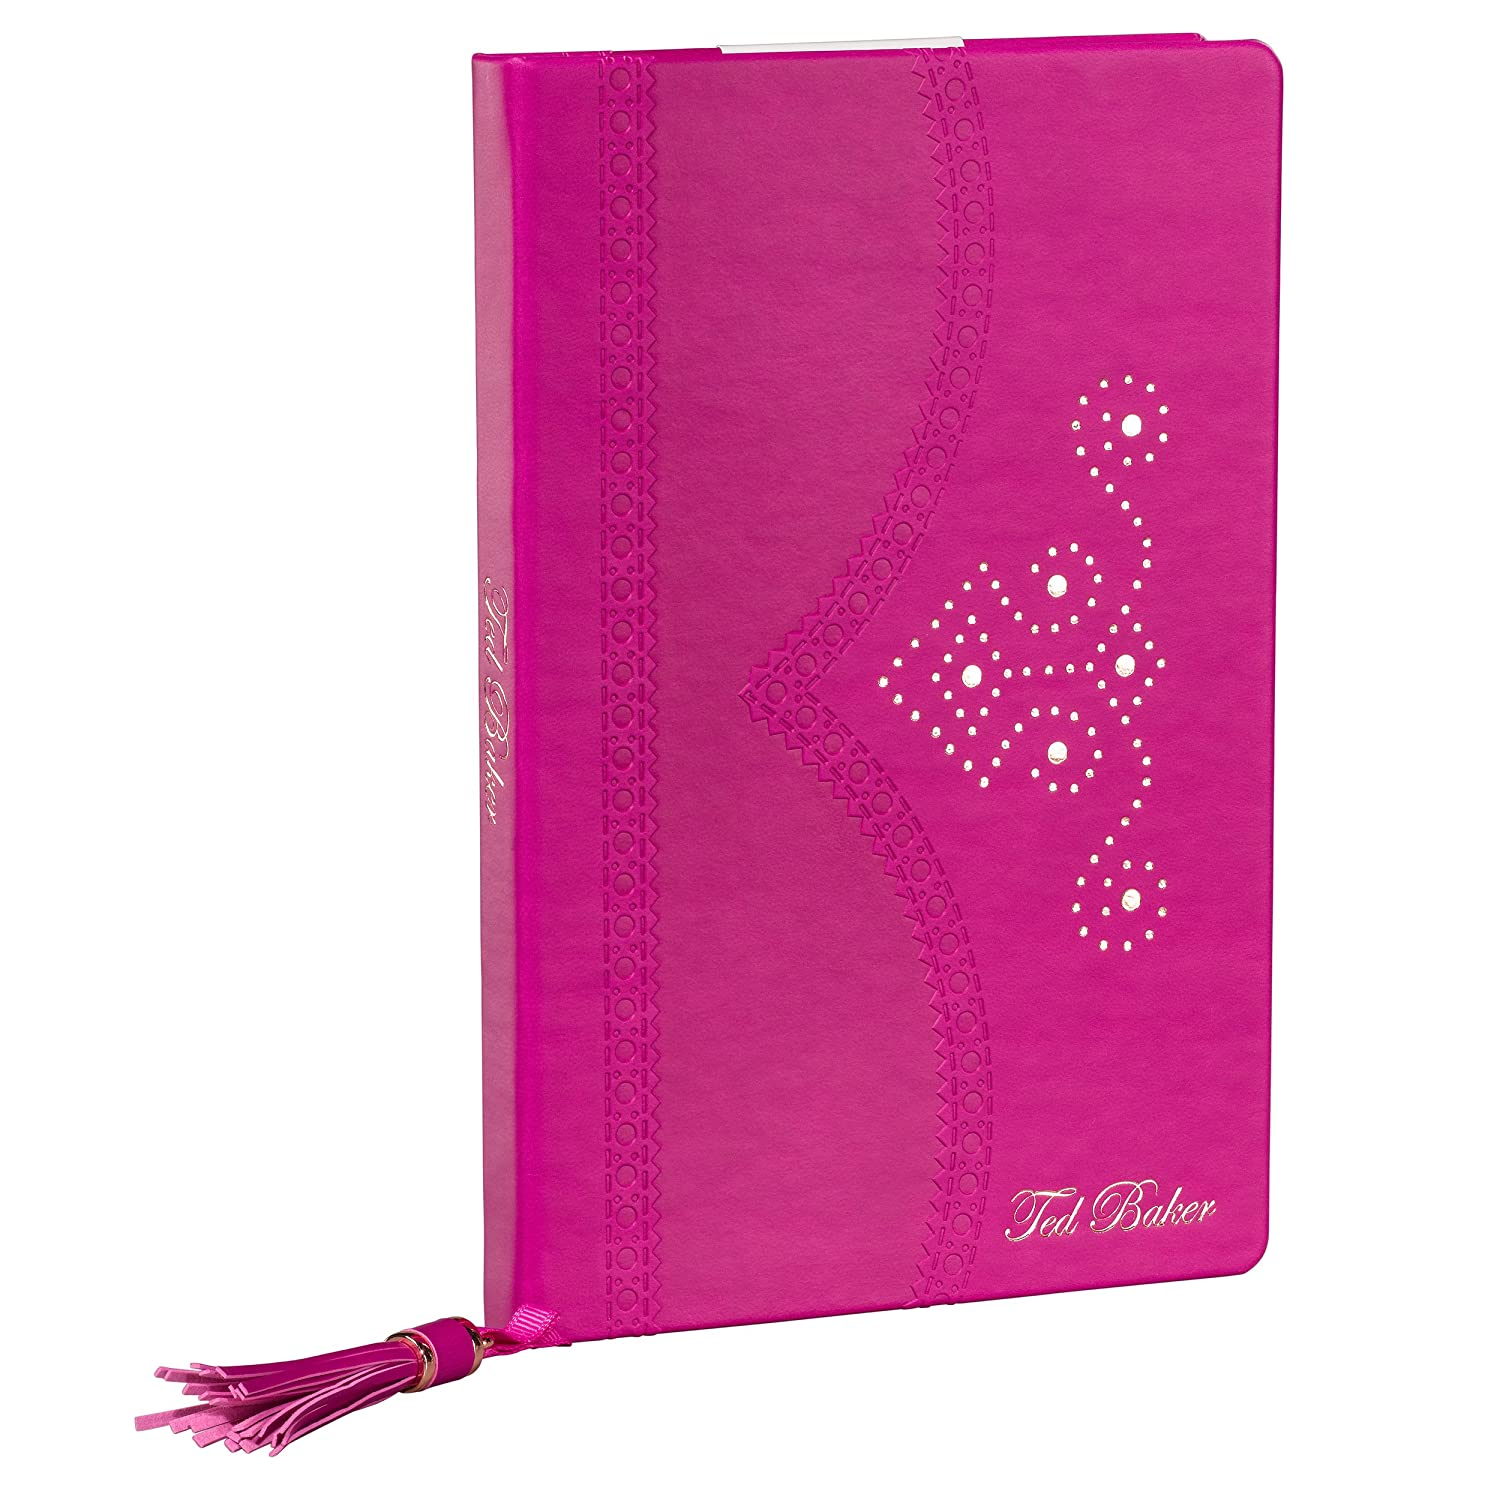 6e50a6c9e236 Amazon.com   Ted Baker Citrus Bloom Notebook